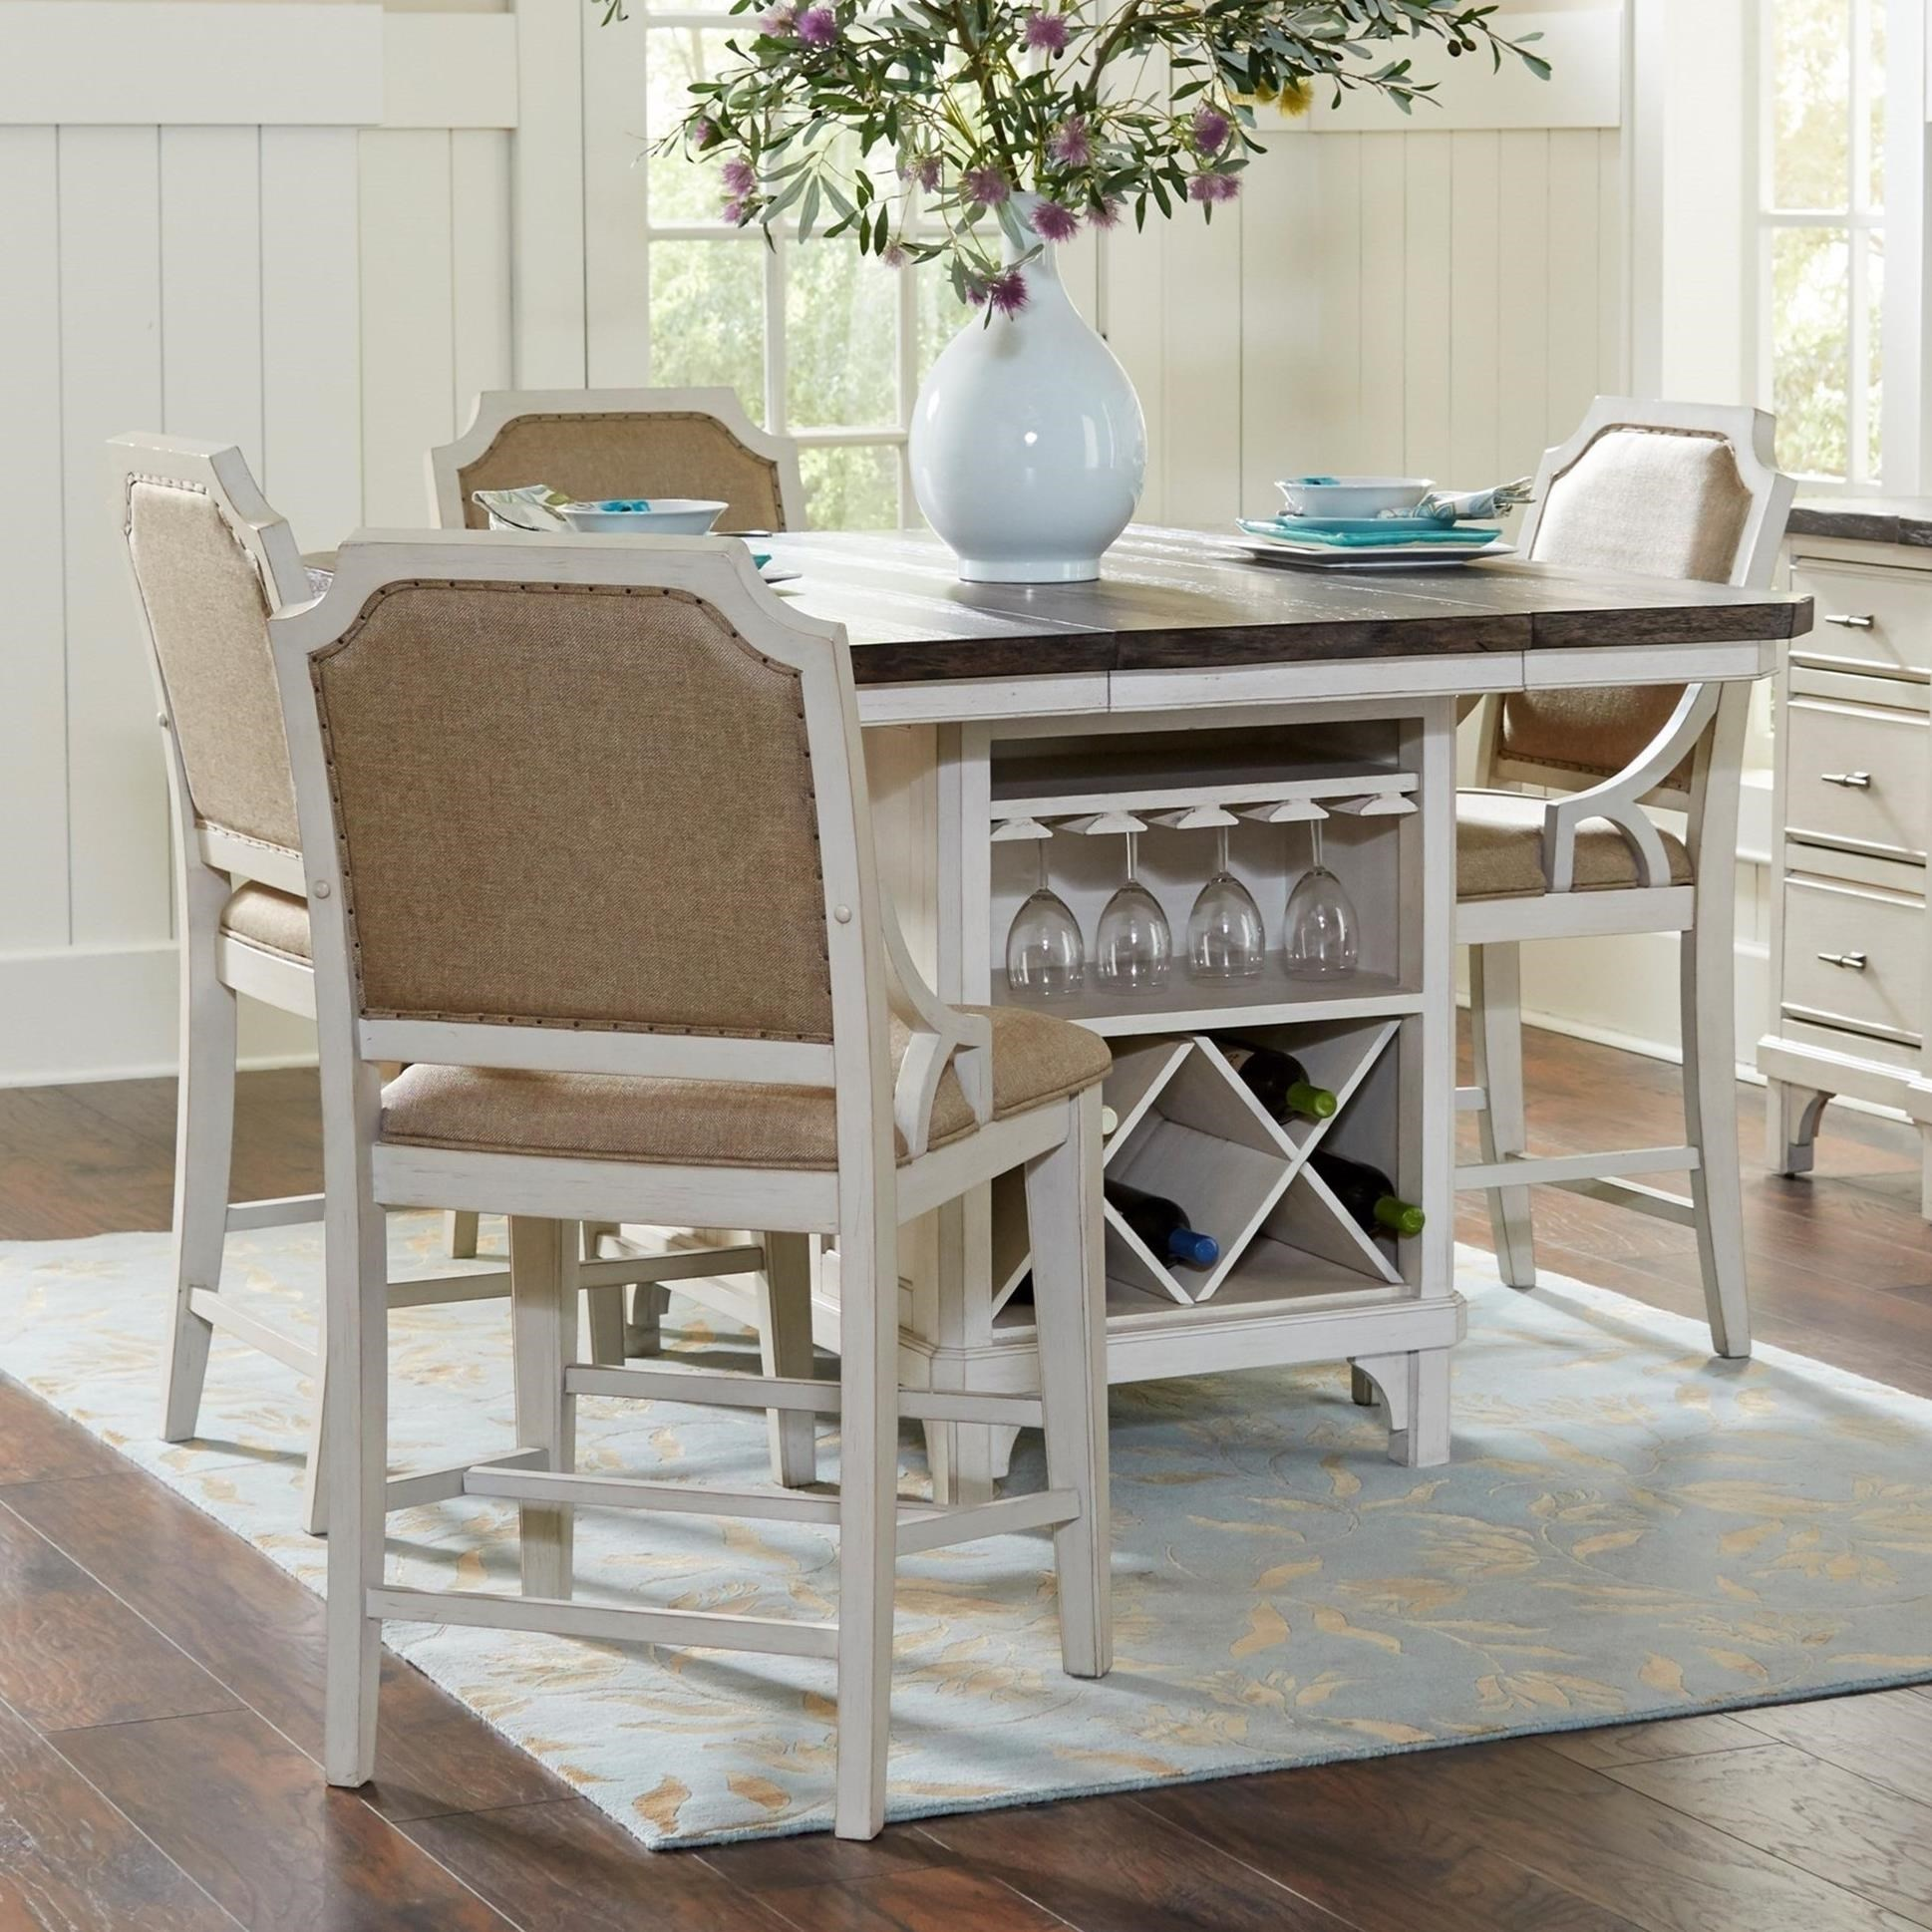 Avalon Furniture Mystic Cay 5 Piece Kitchen Island Table Set